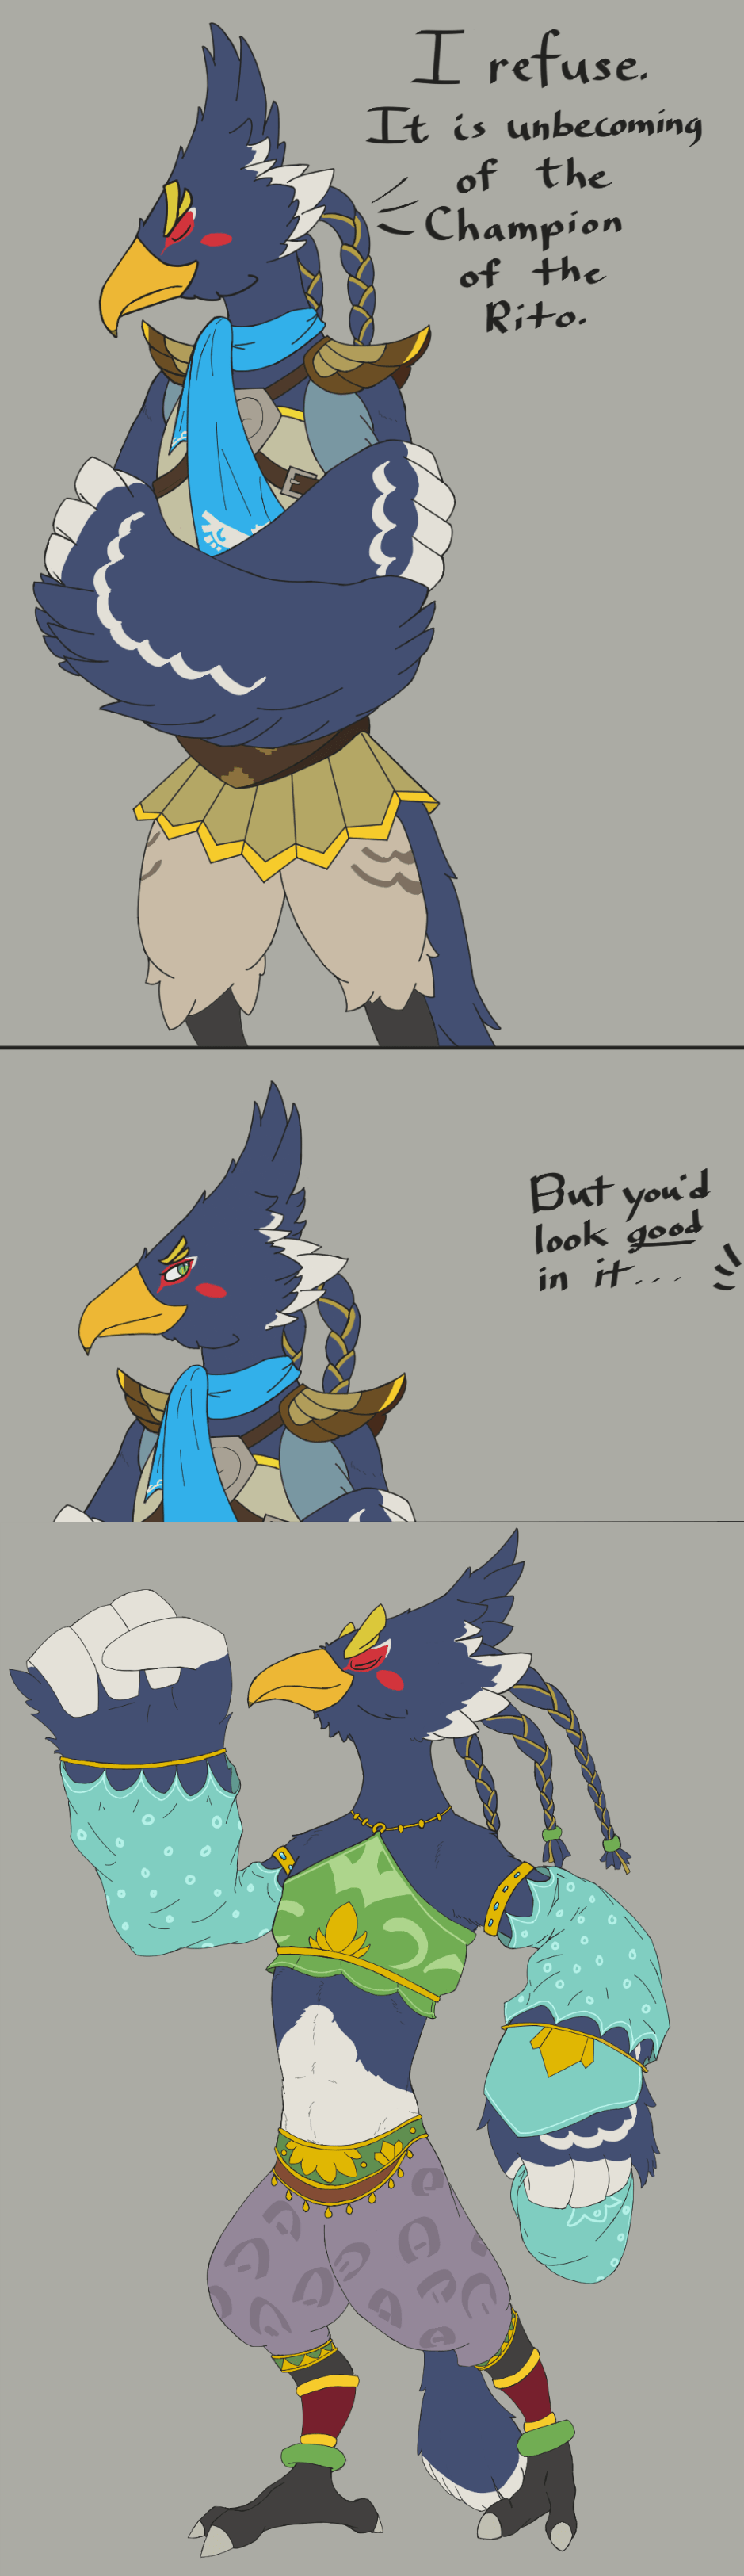 In The End Clothes Don T Make Revali Look Good Revali Makes